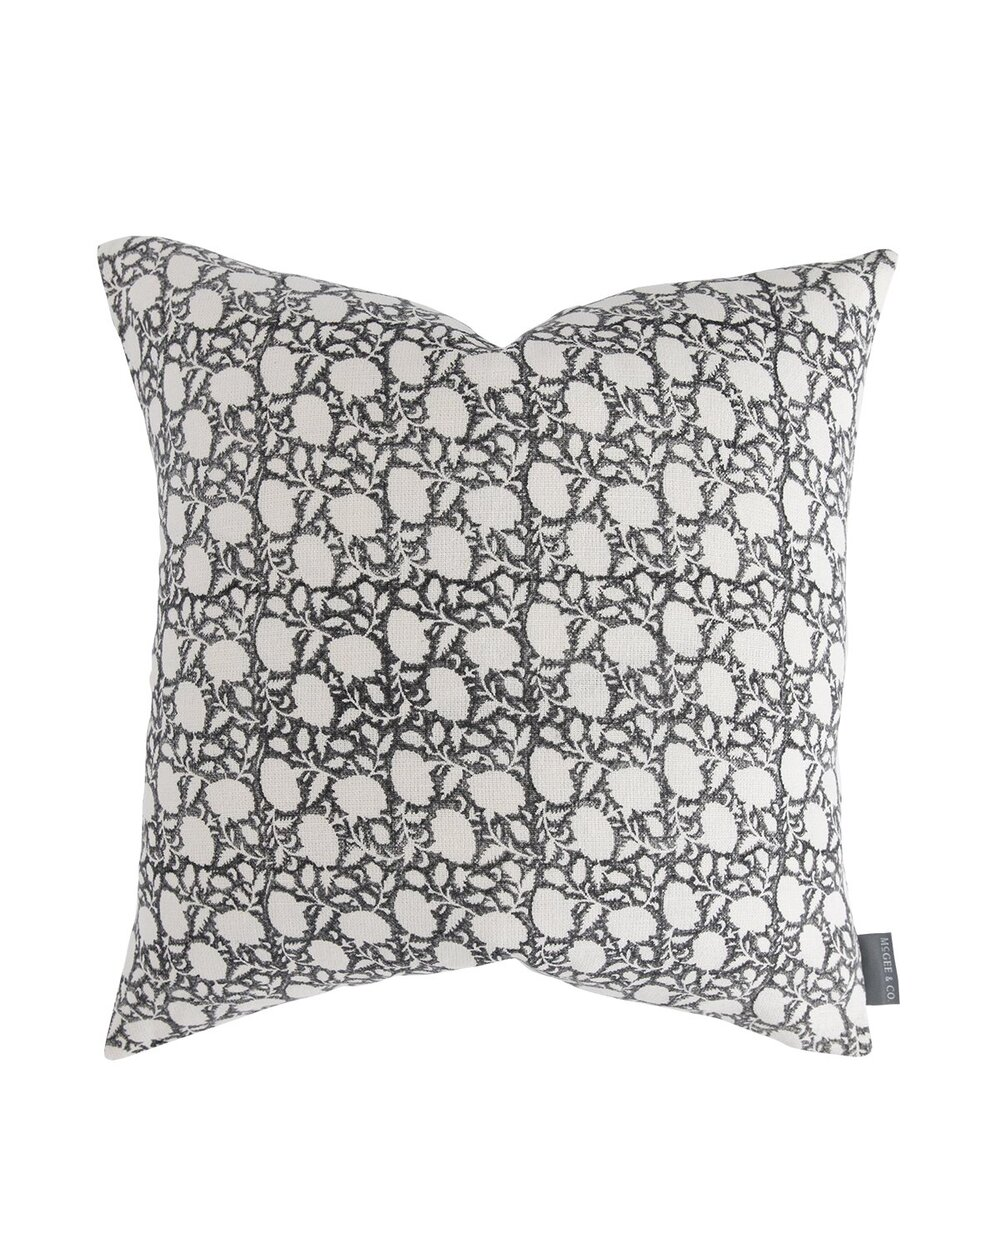 Clara_Block_Print_Pillow_Cover1.jpg